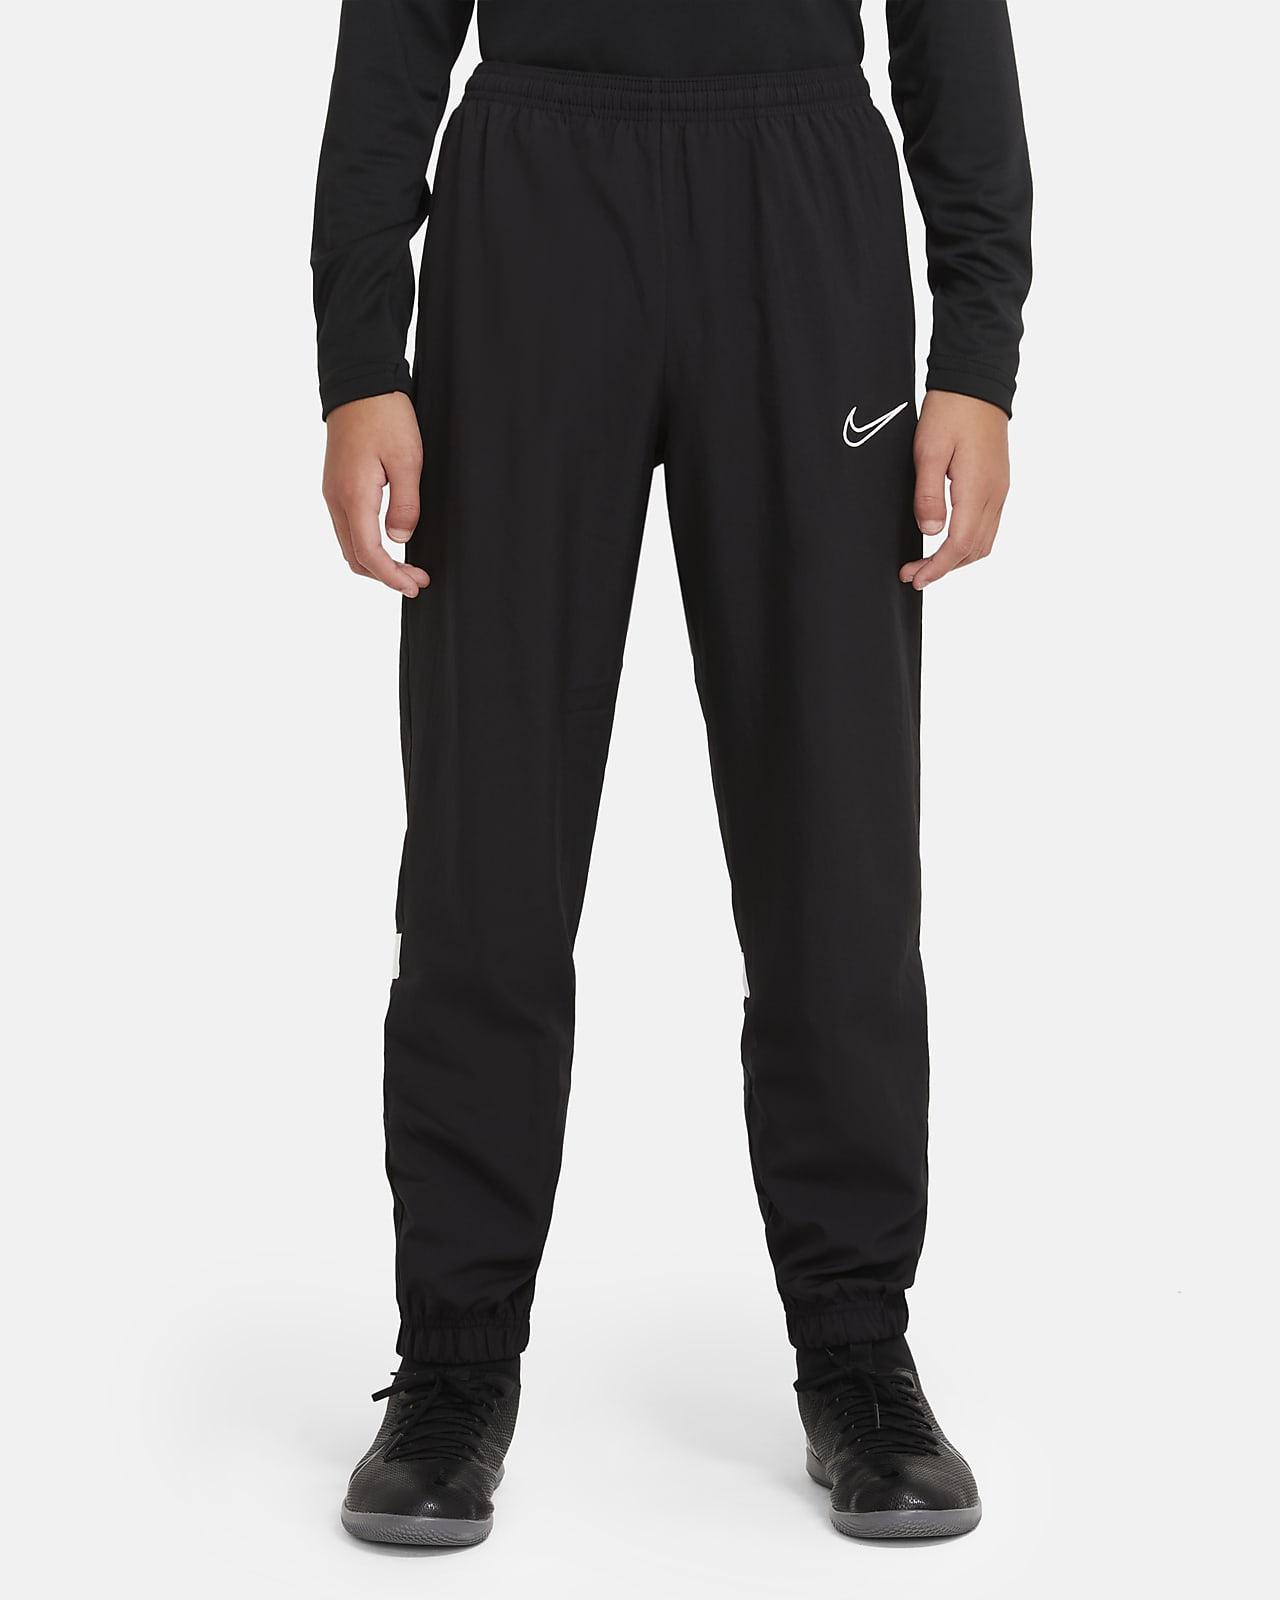 Nike Dri-FIT Academy Older Kids' Woven Football Tracksuit Bottoms